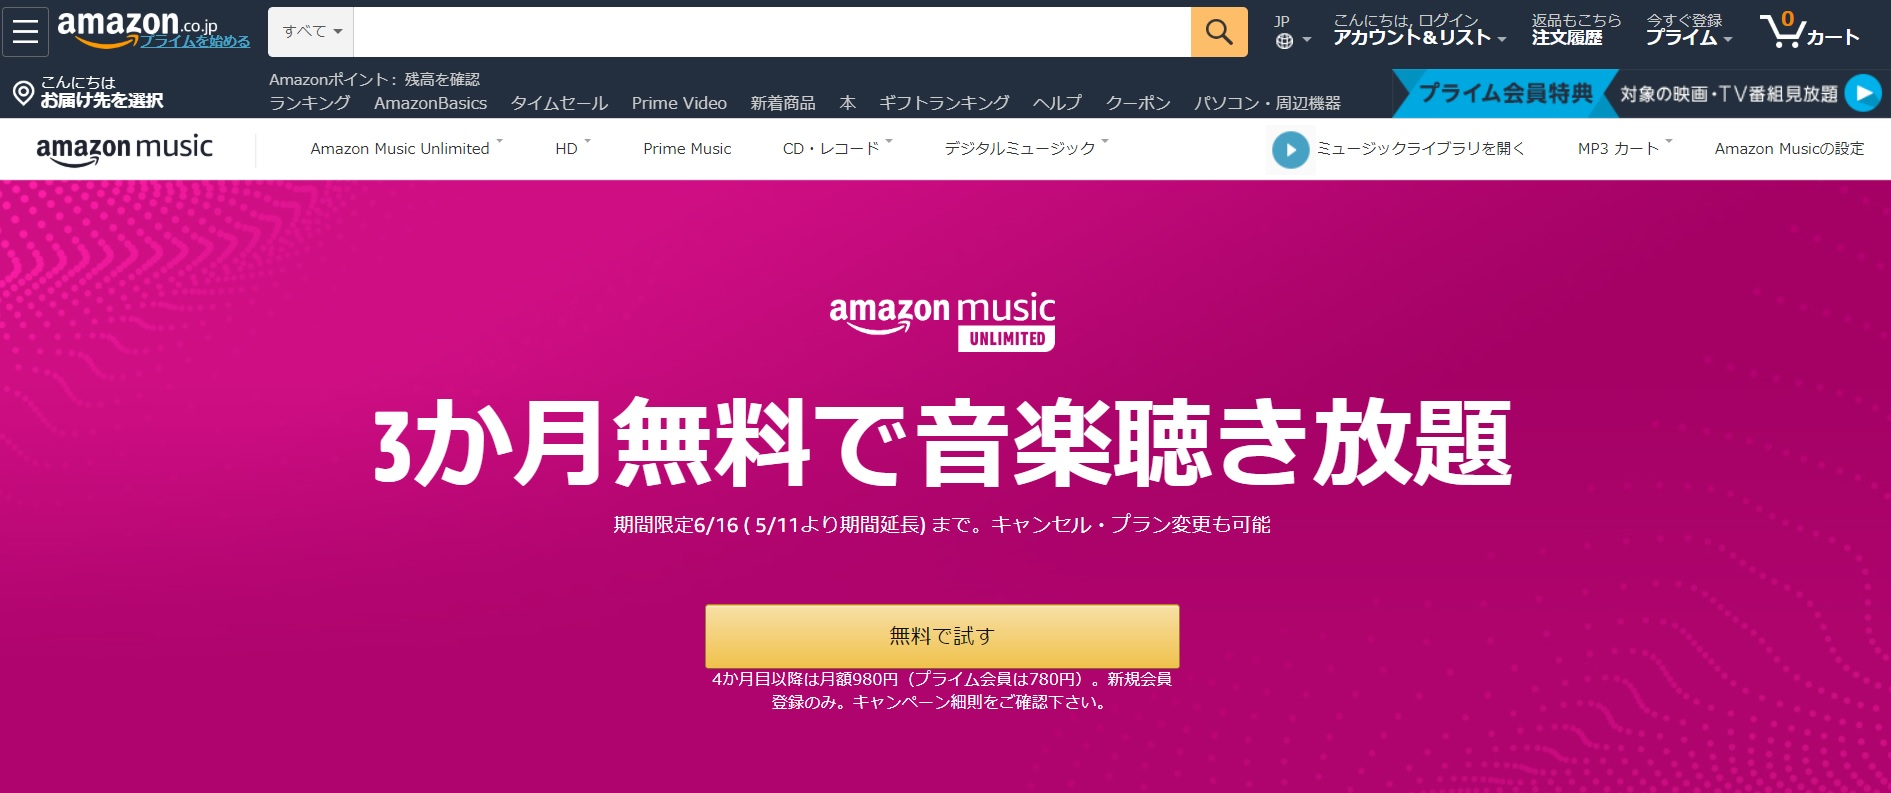 Amazon Music Unlimited 3か月無料